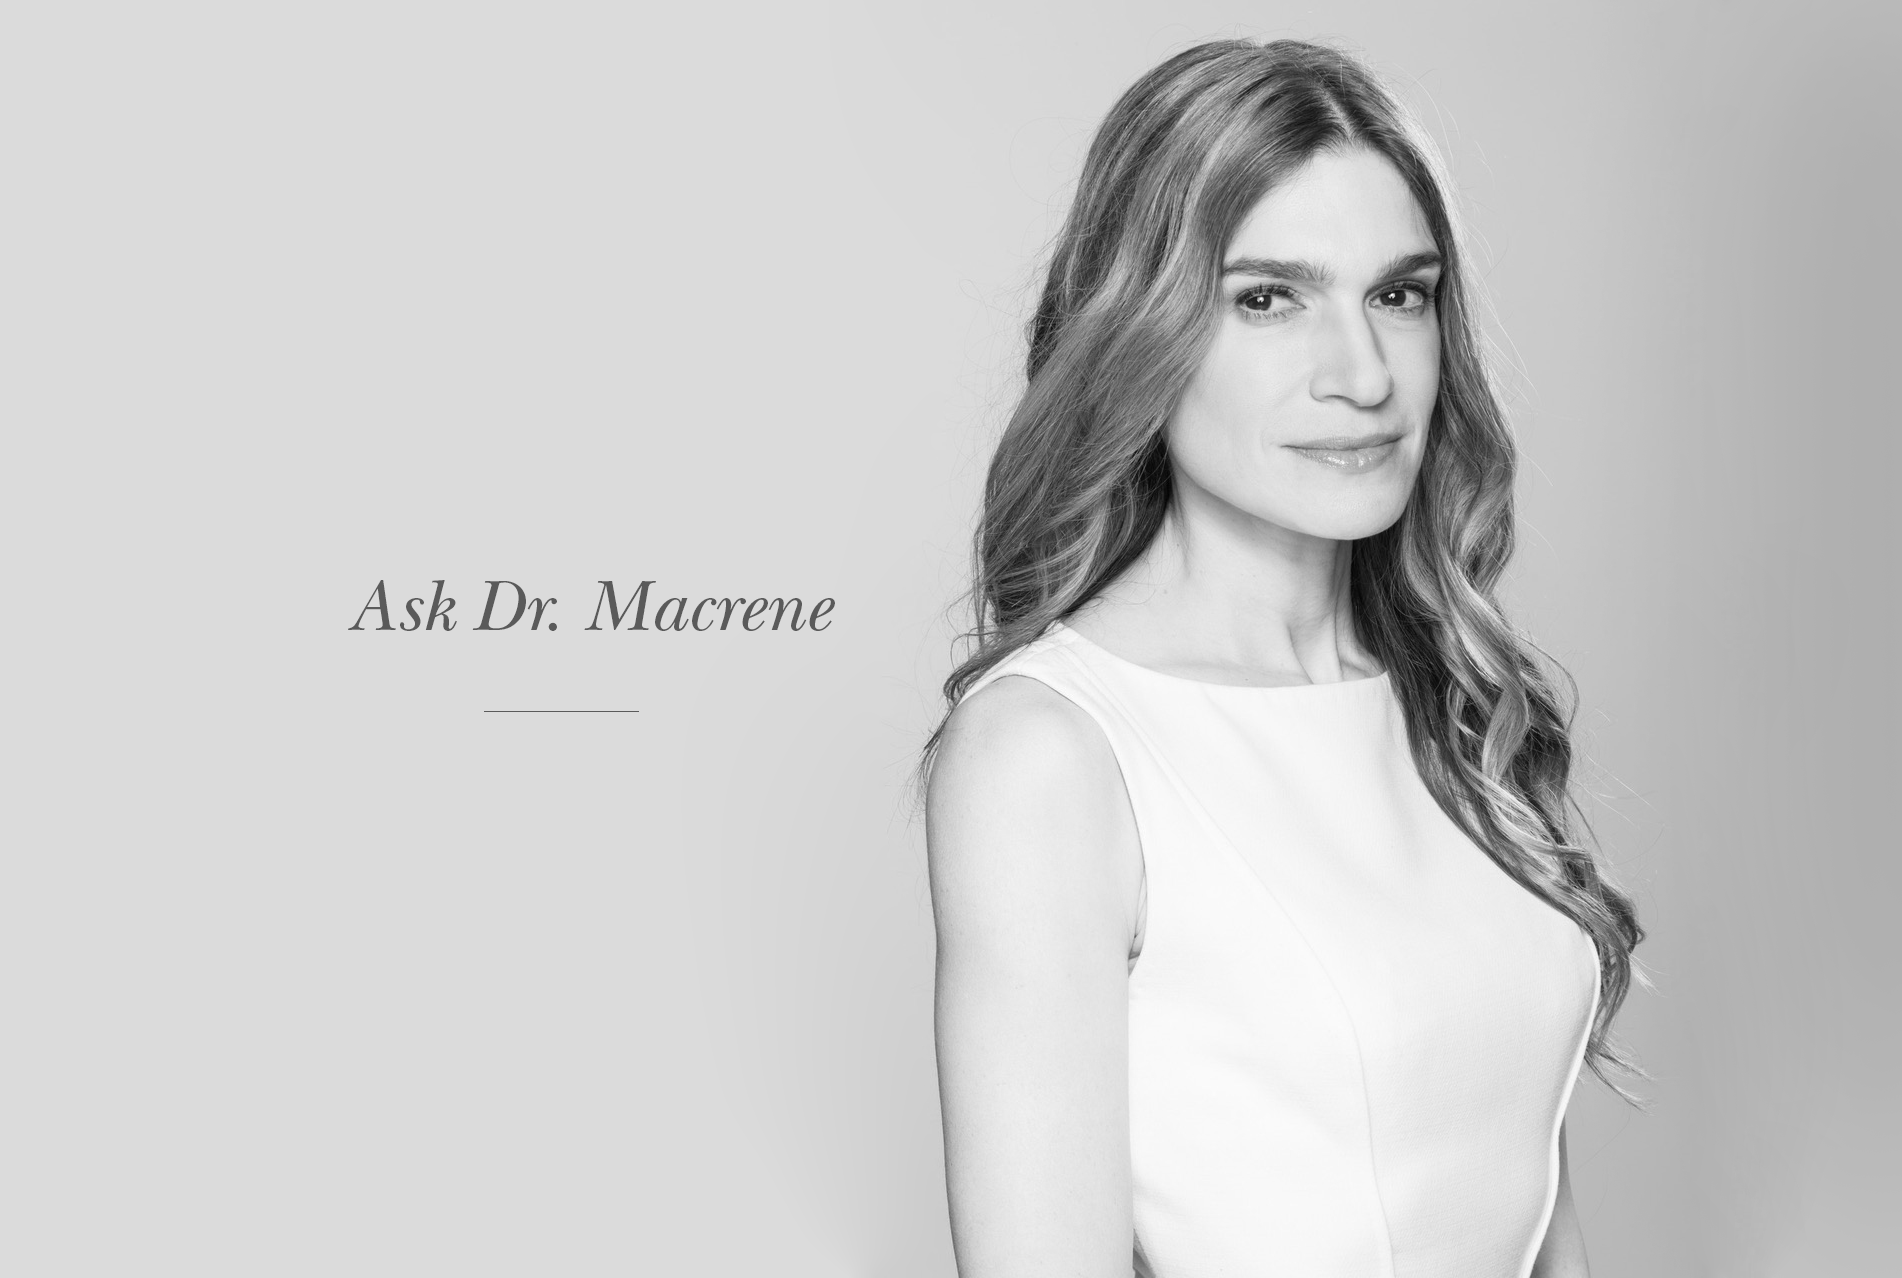 Ask Dr. Macrene: Who can I contact for product advice?